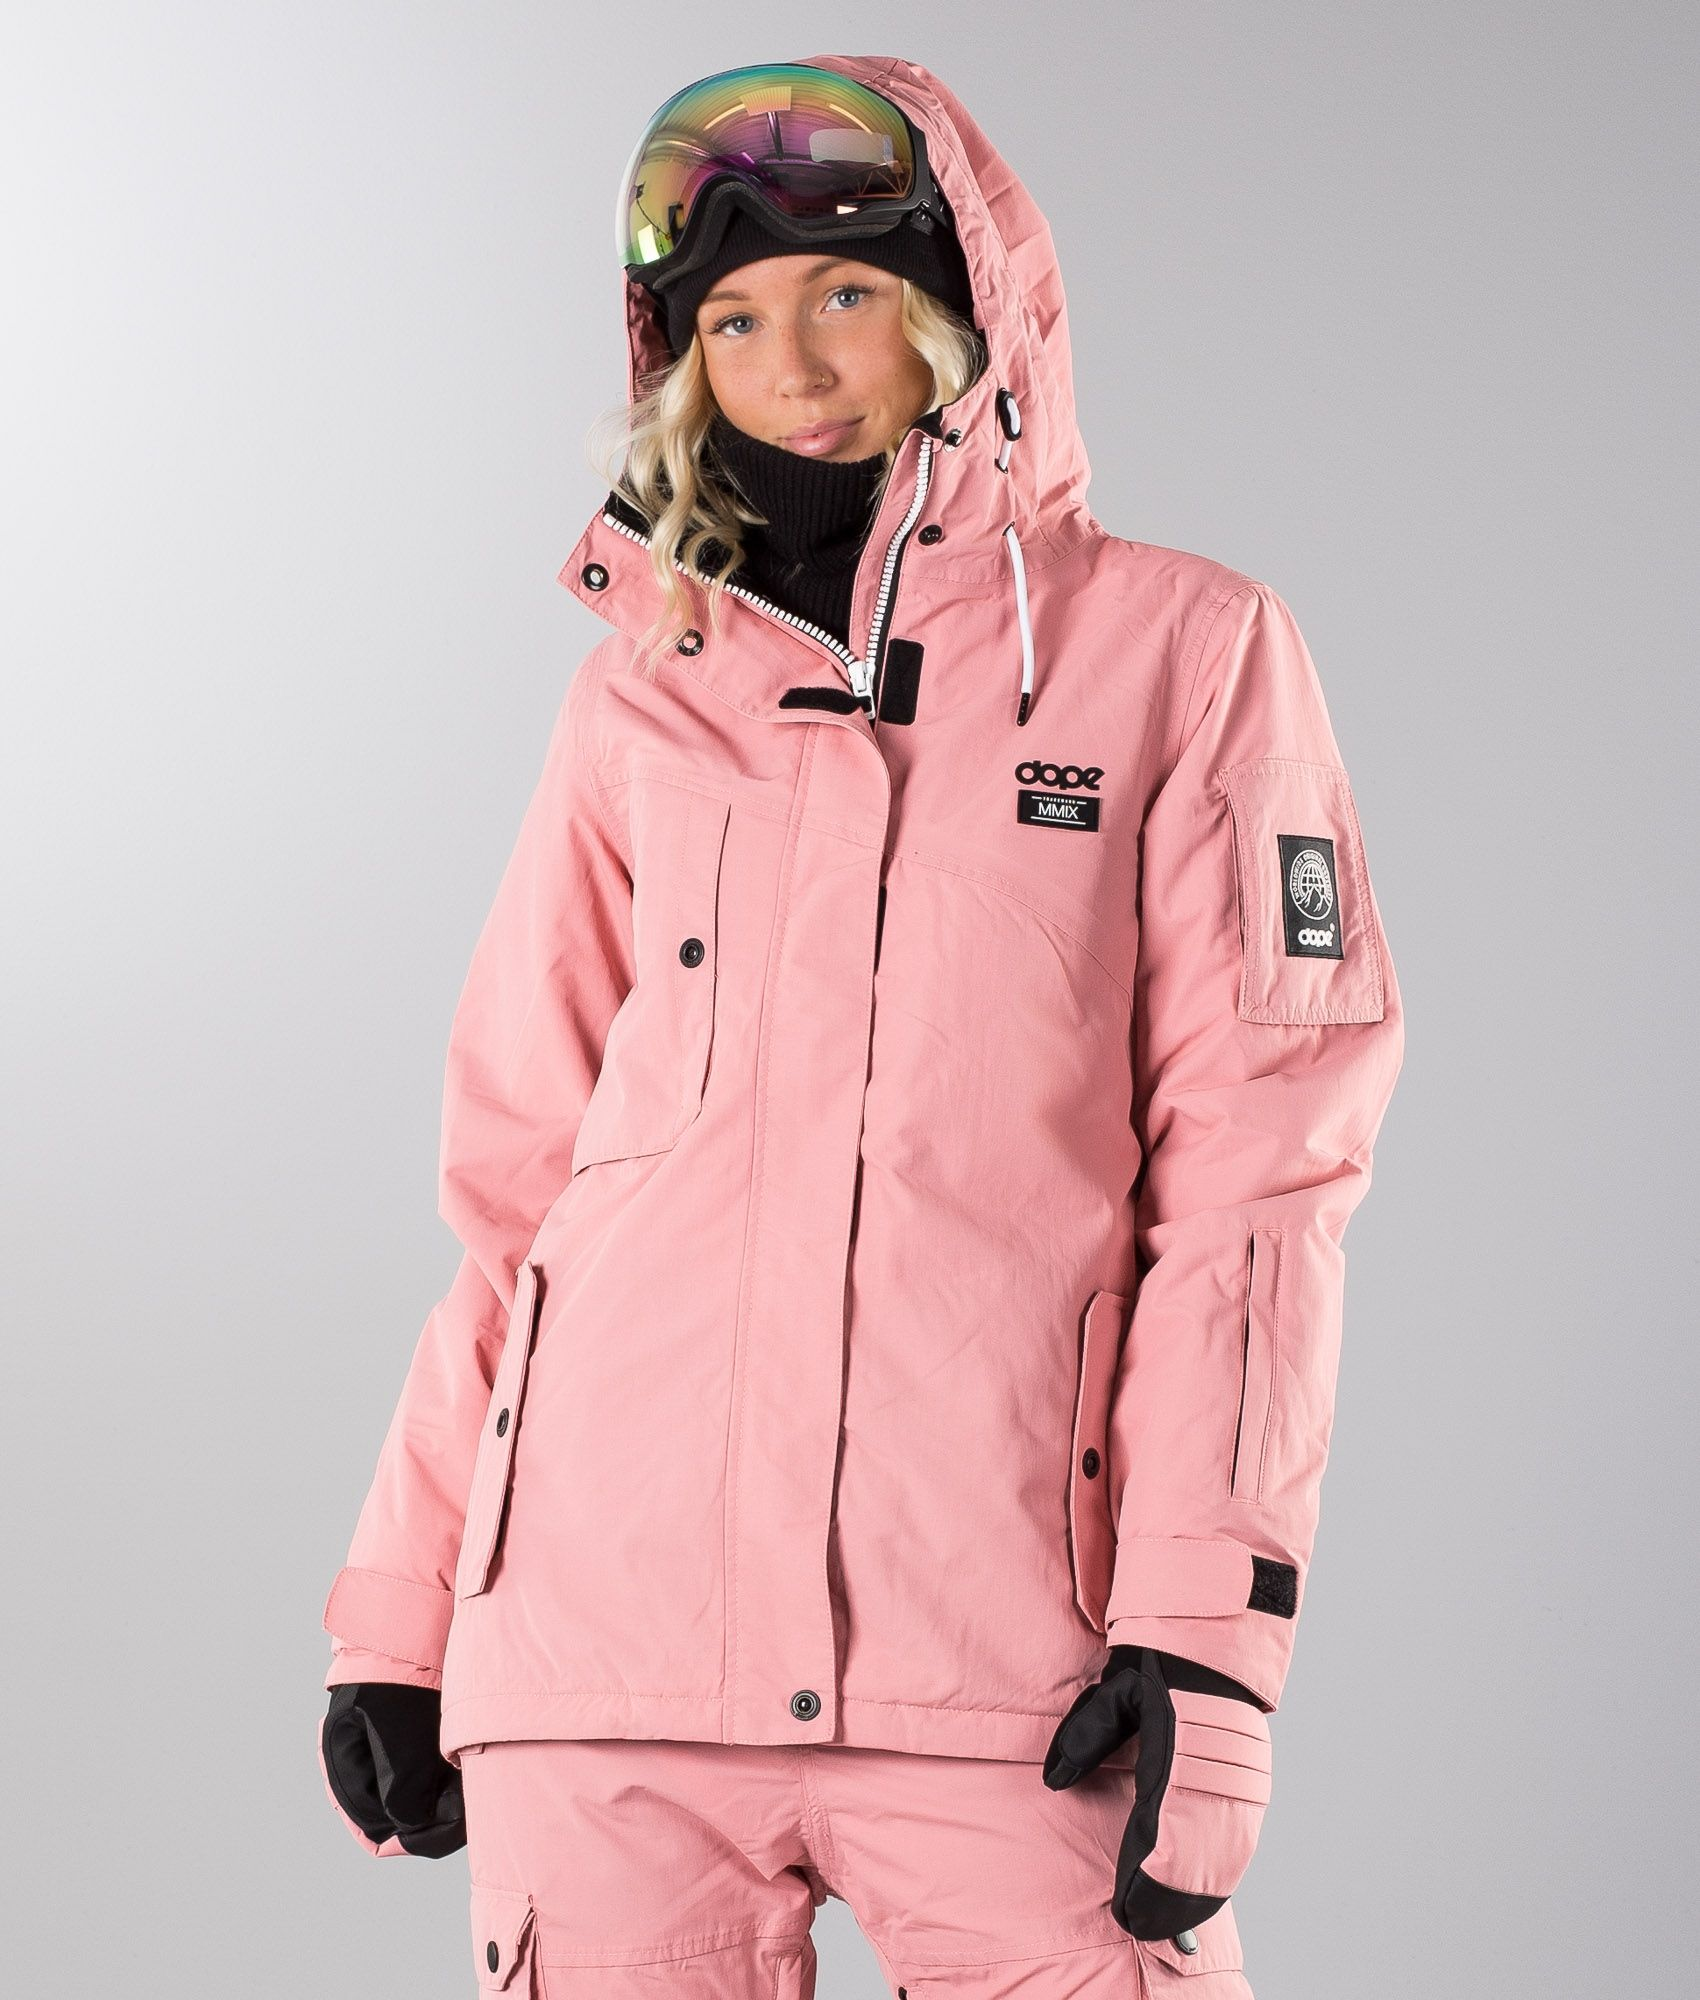 Buy Adept W Ski Jacket from Dope at Ridestore.com - Always free shipping affa4185f